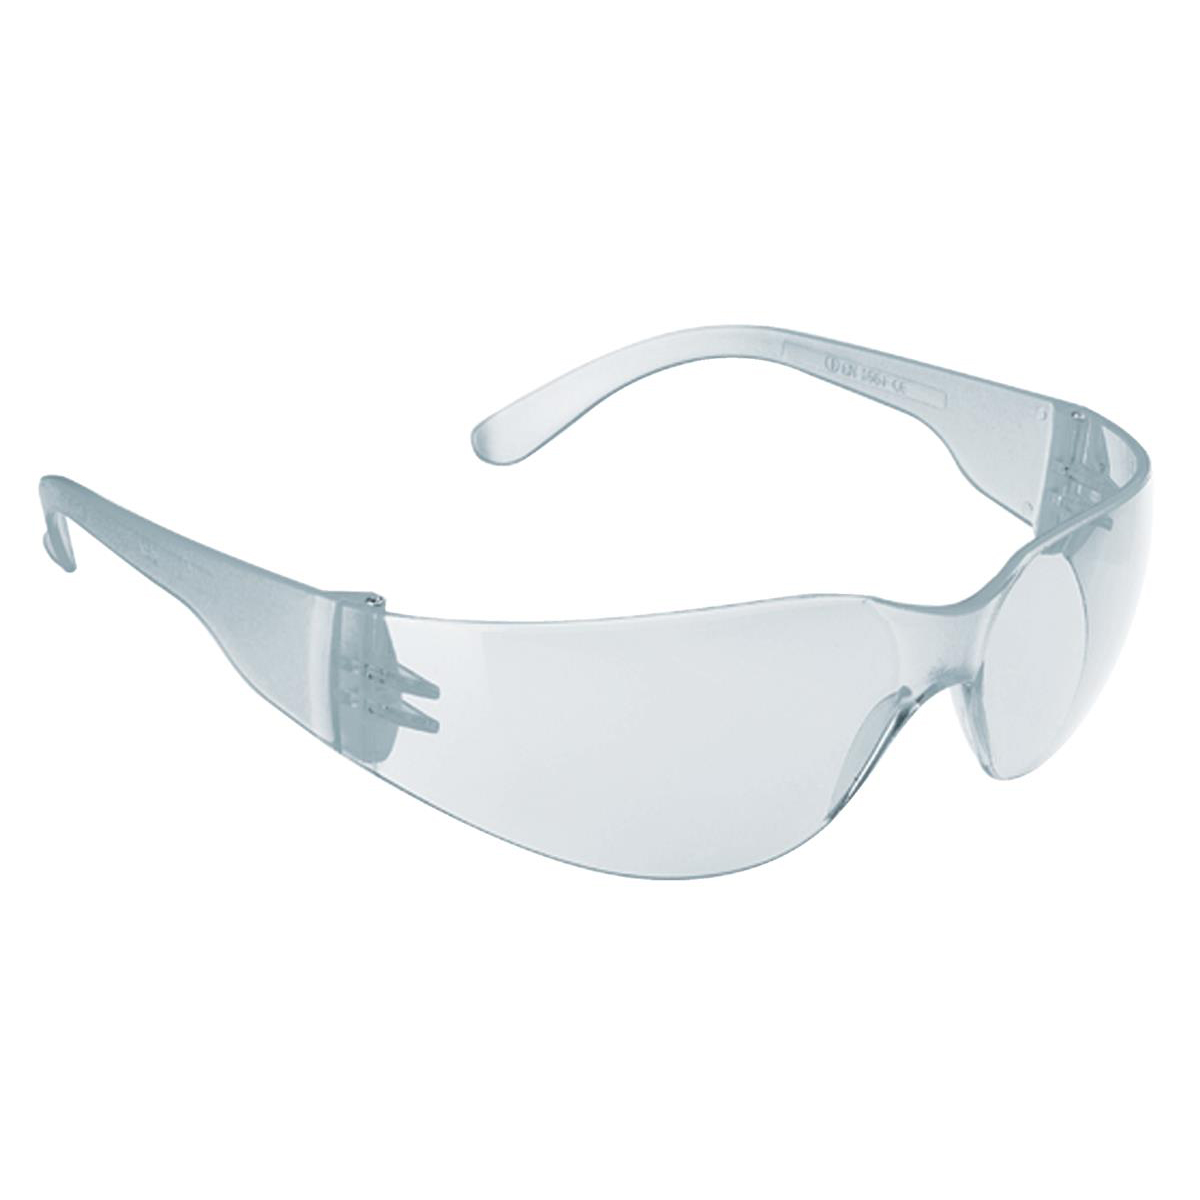 Safety Spectacles Anti-mist Lens Clear